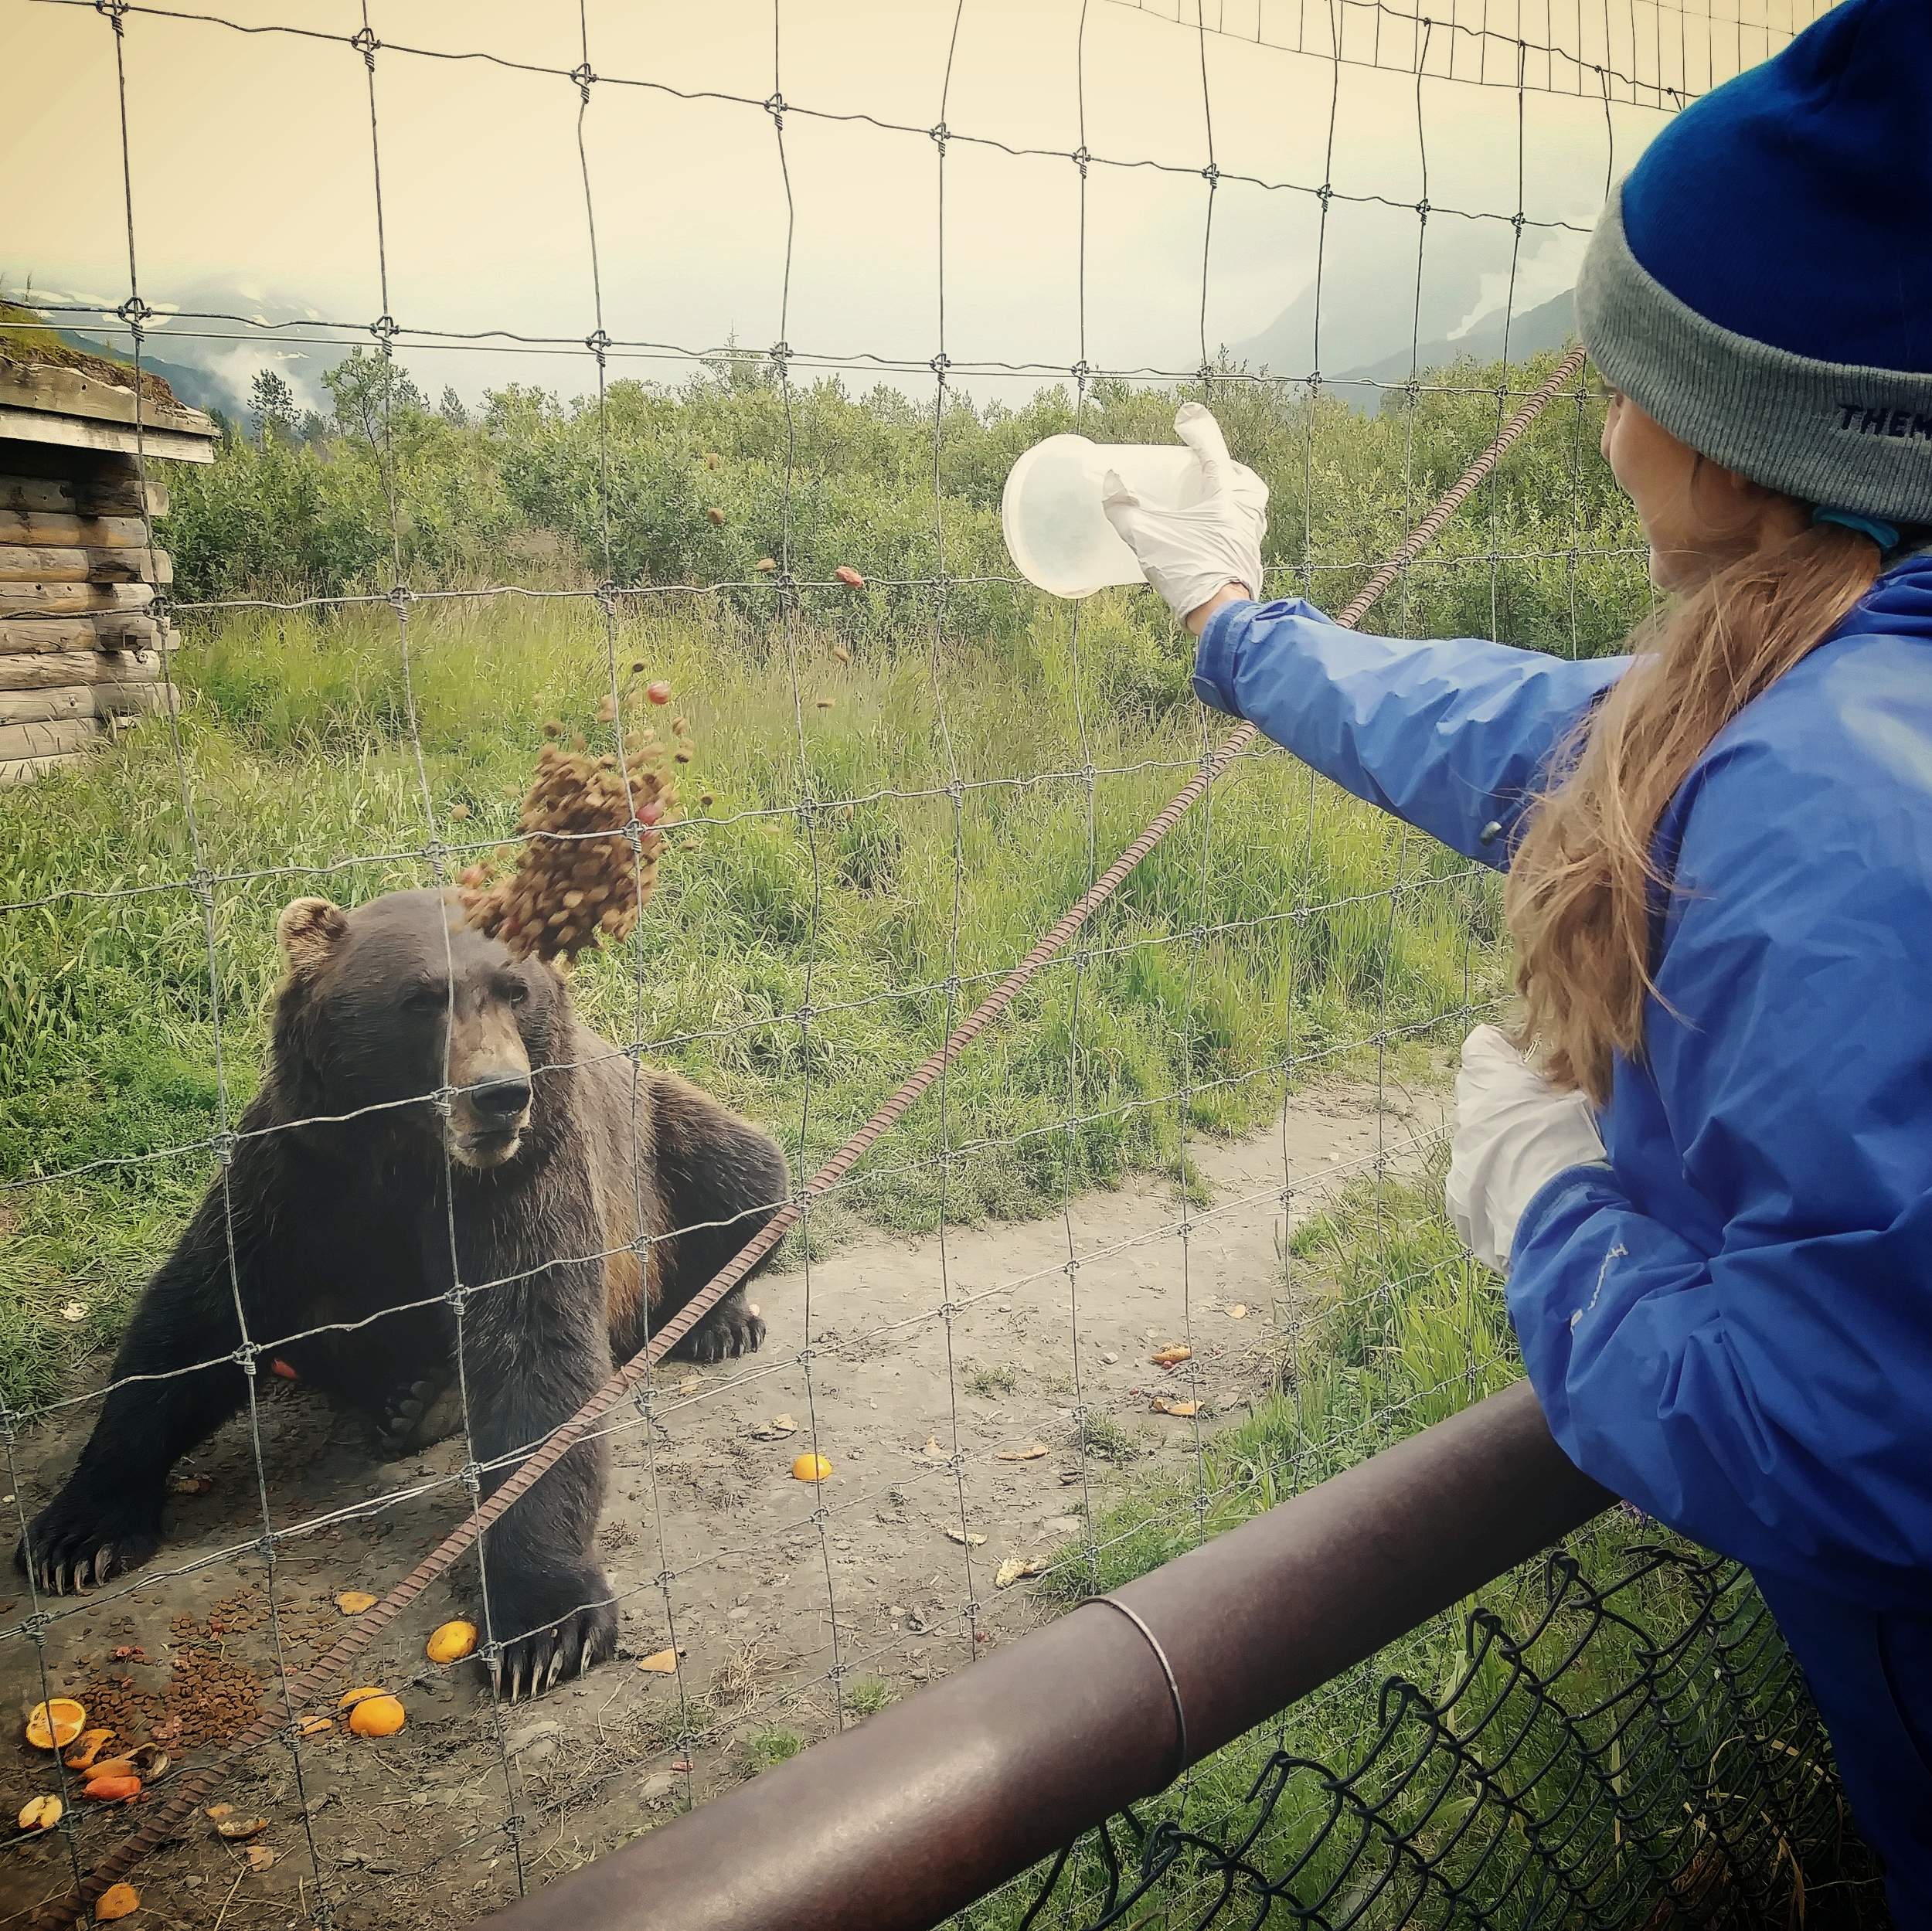 Despite the misleading angle of this photograph, and the slightly perturbed look on the bear's face, Tara was not actually throwing food on him.